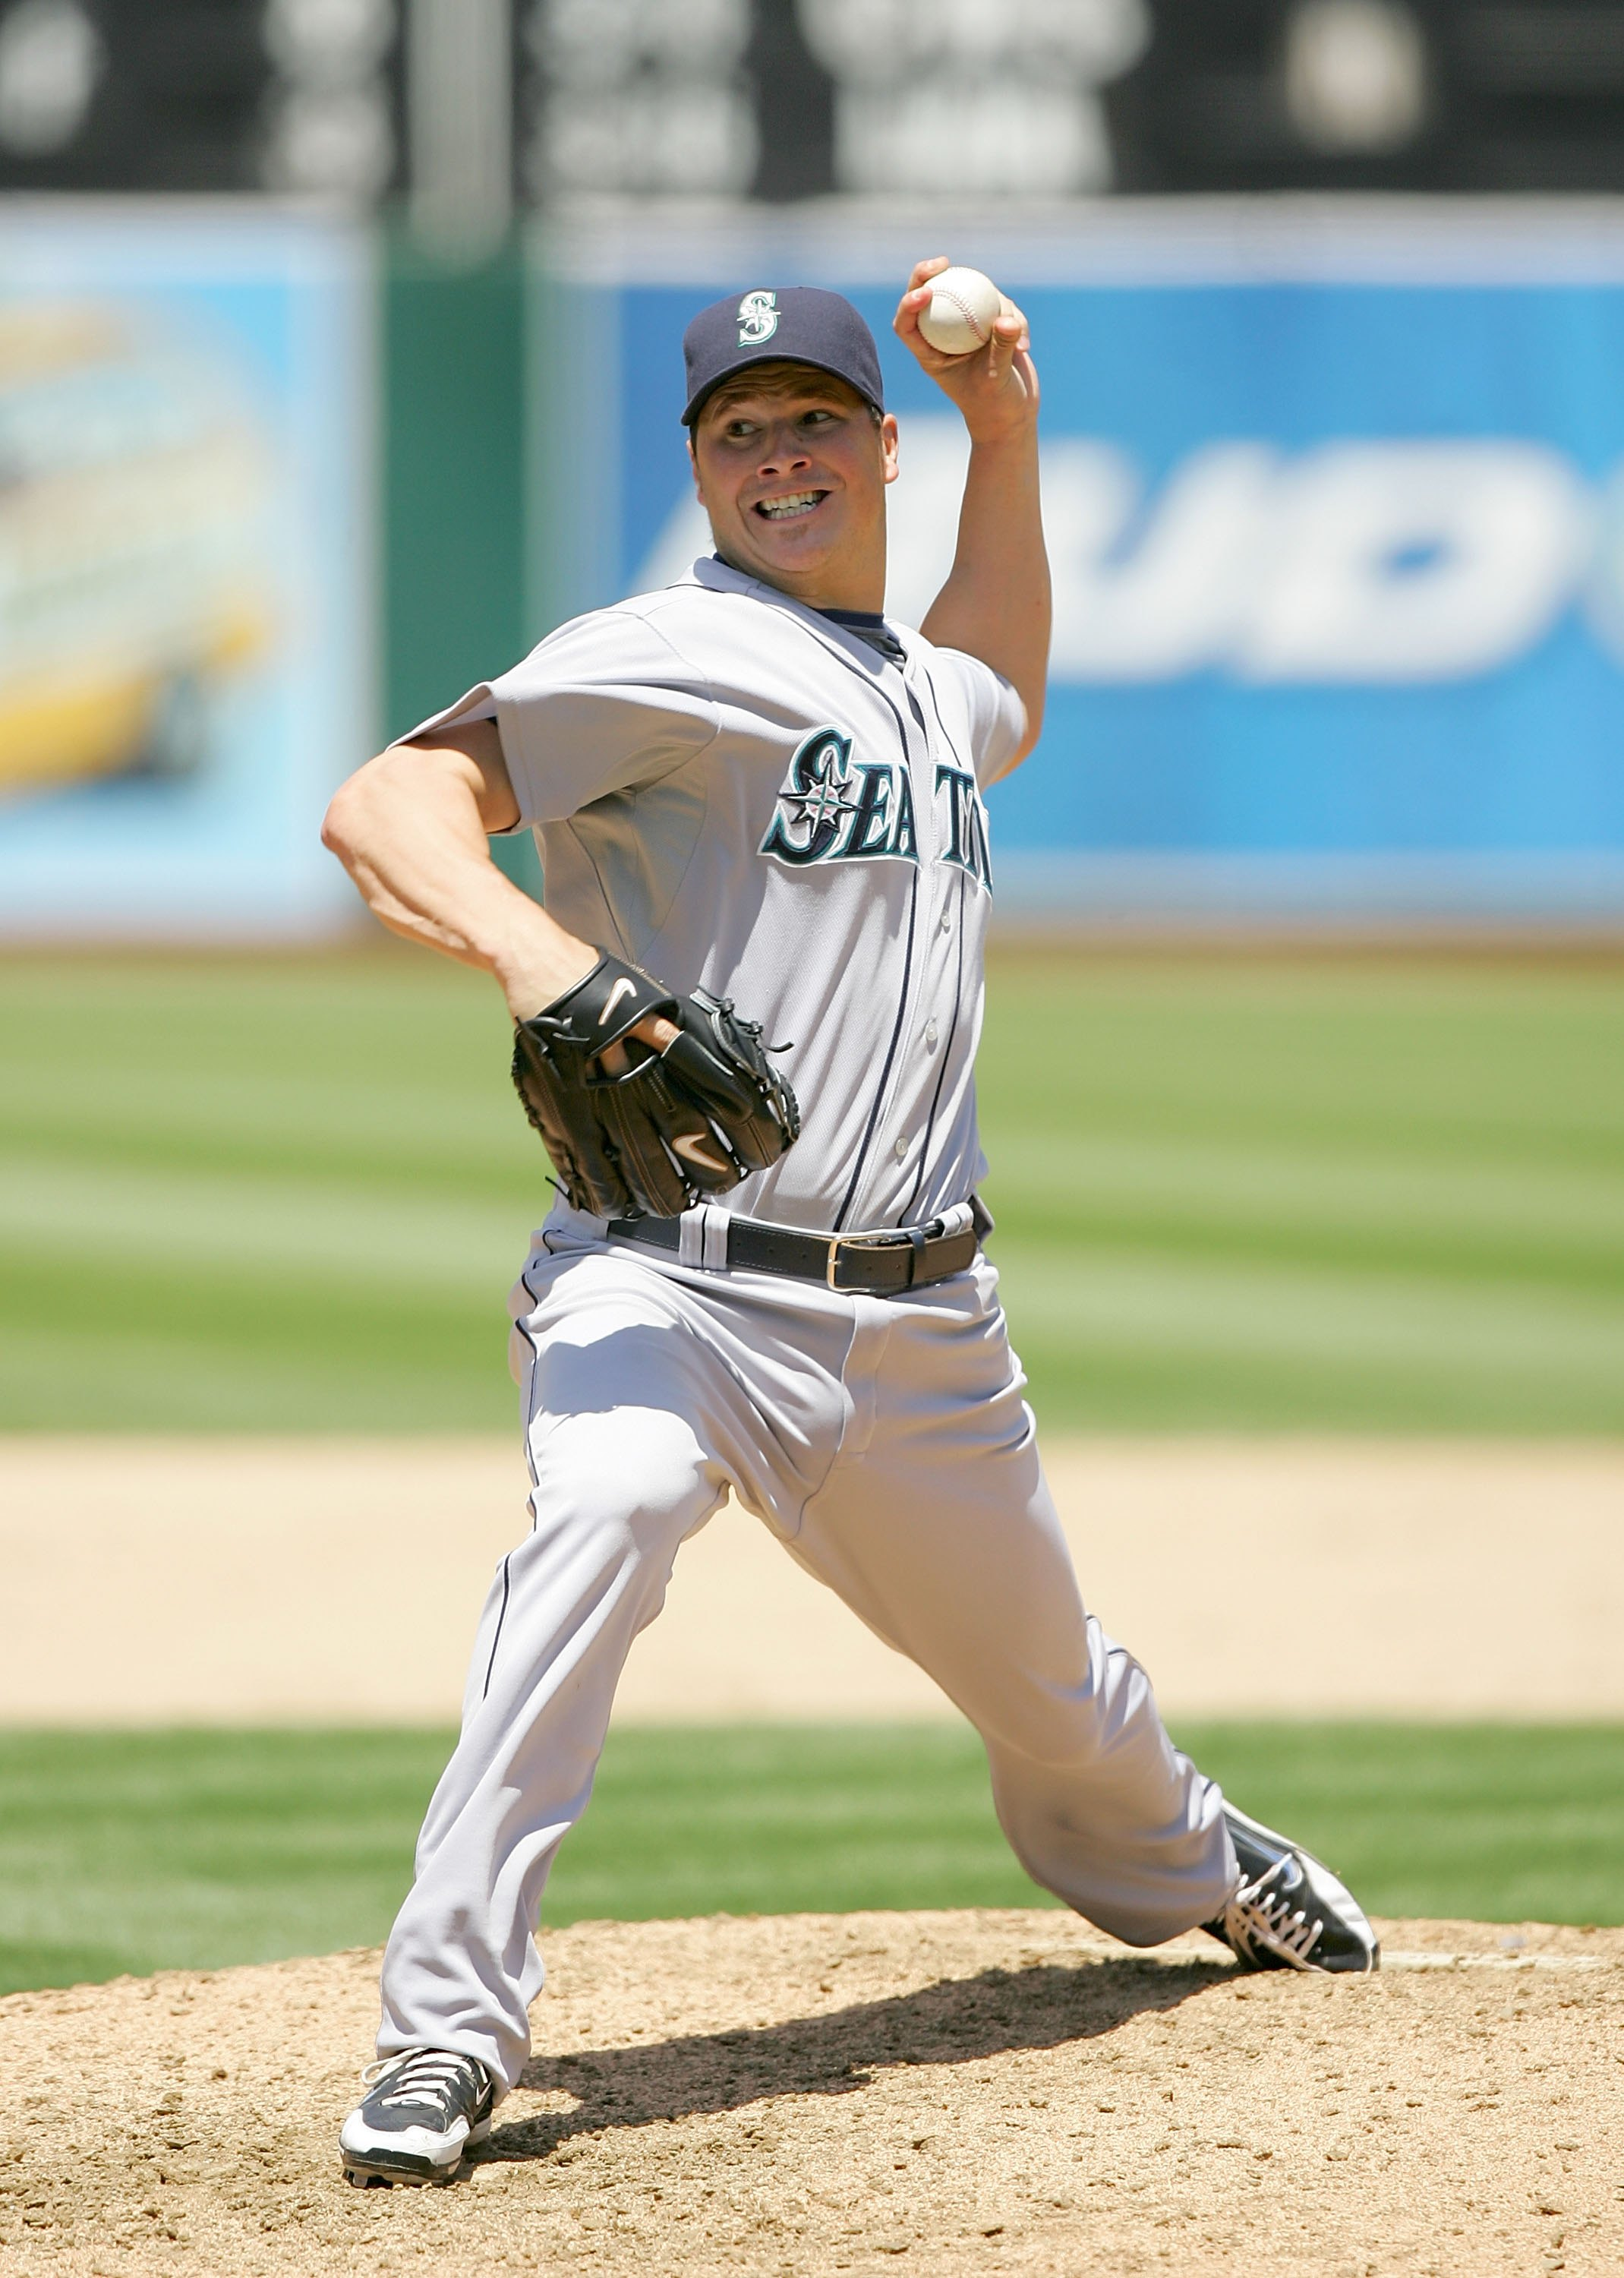 OAKLAND, CA - MAY 27:  Erik Bedard #45 of the Seattle Mariners pitches against the Oakland Athletics at the Oakland Coliseum on May 27, 2009 in Oakland, California.  (Photo by Ezra Shaw/Getty Images)